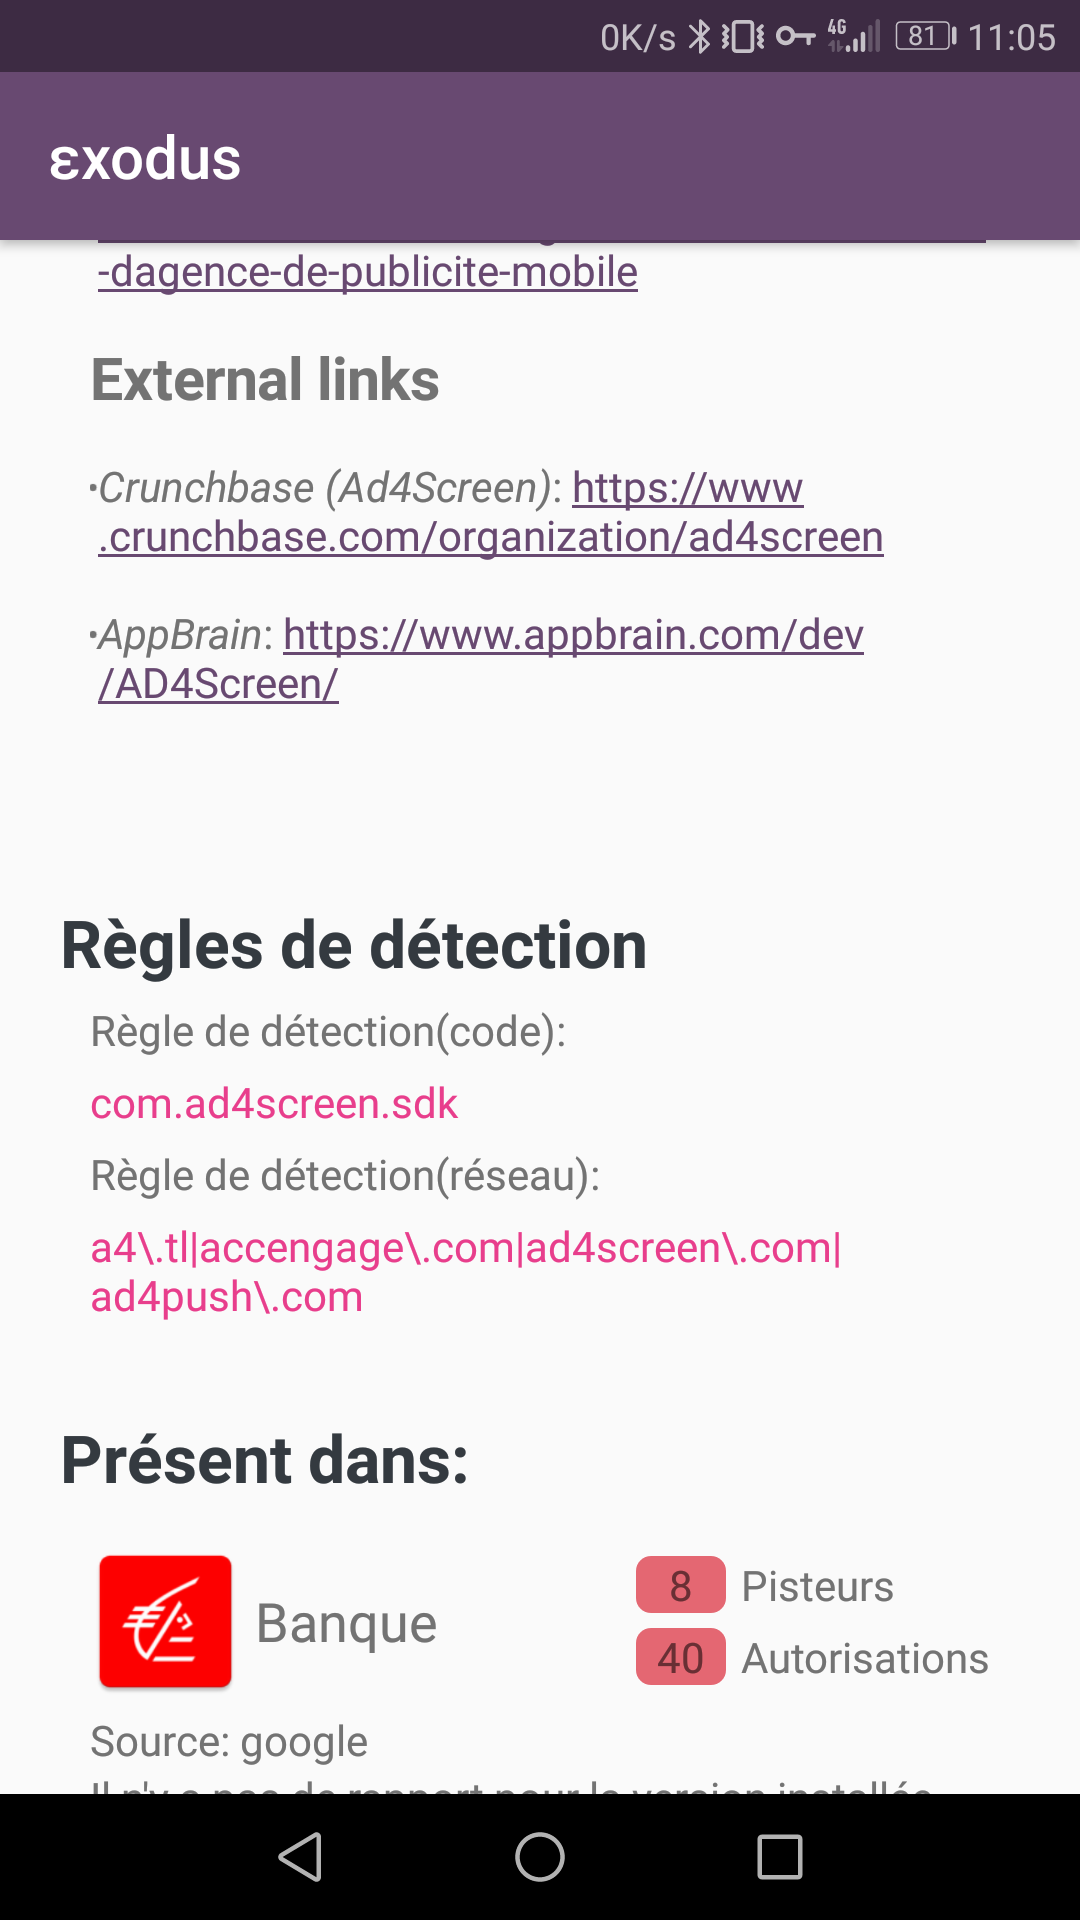 capture d'écran de l'application